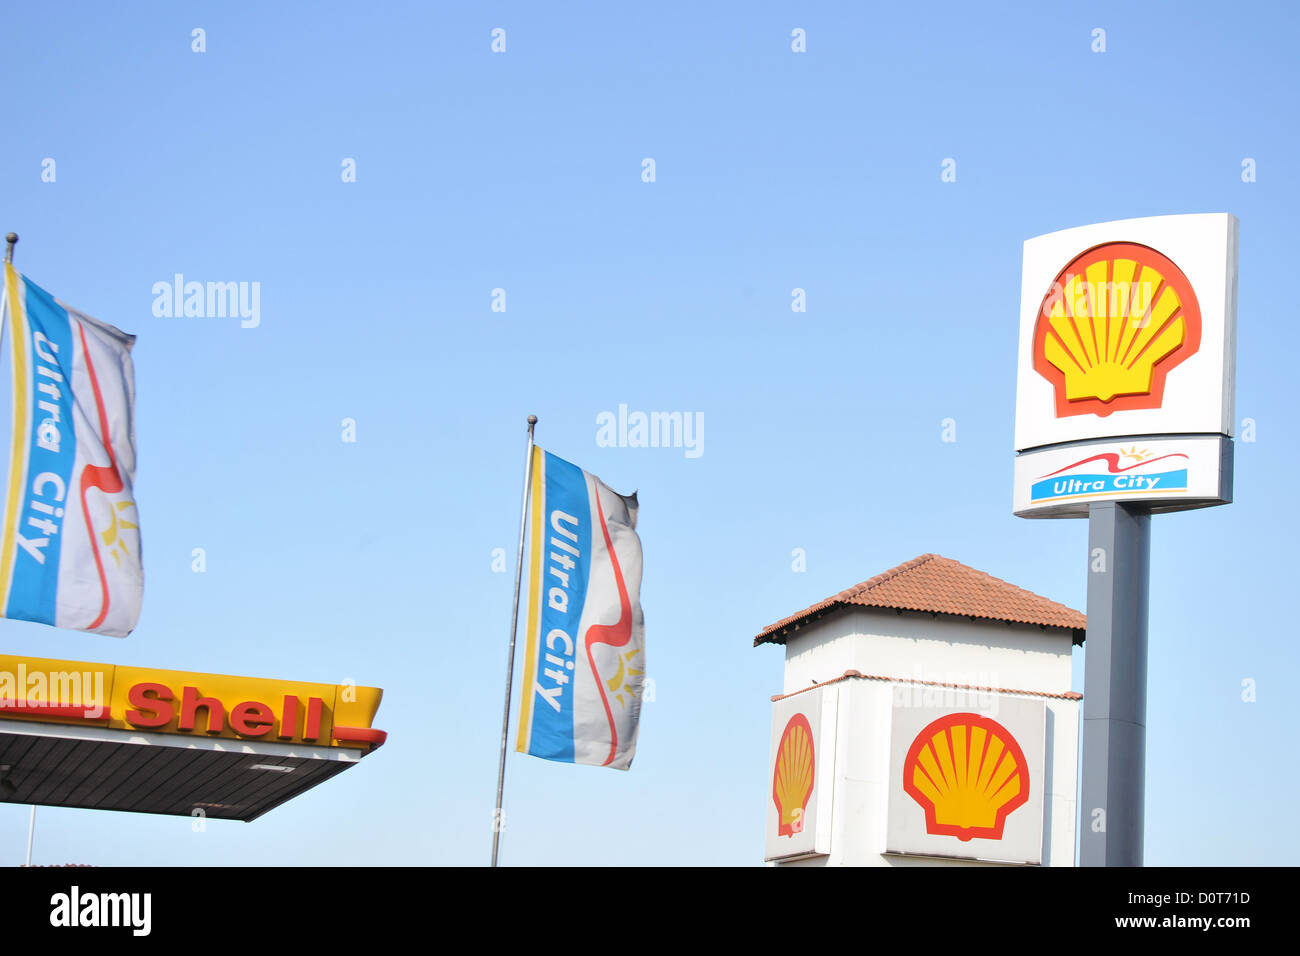 Arco Gas Prices >> Gas Station Signs Stock Photos & Gas Station Signs Stock ...